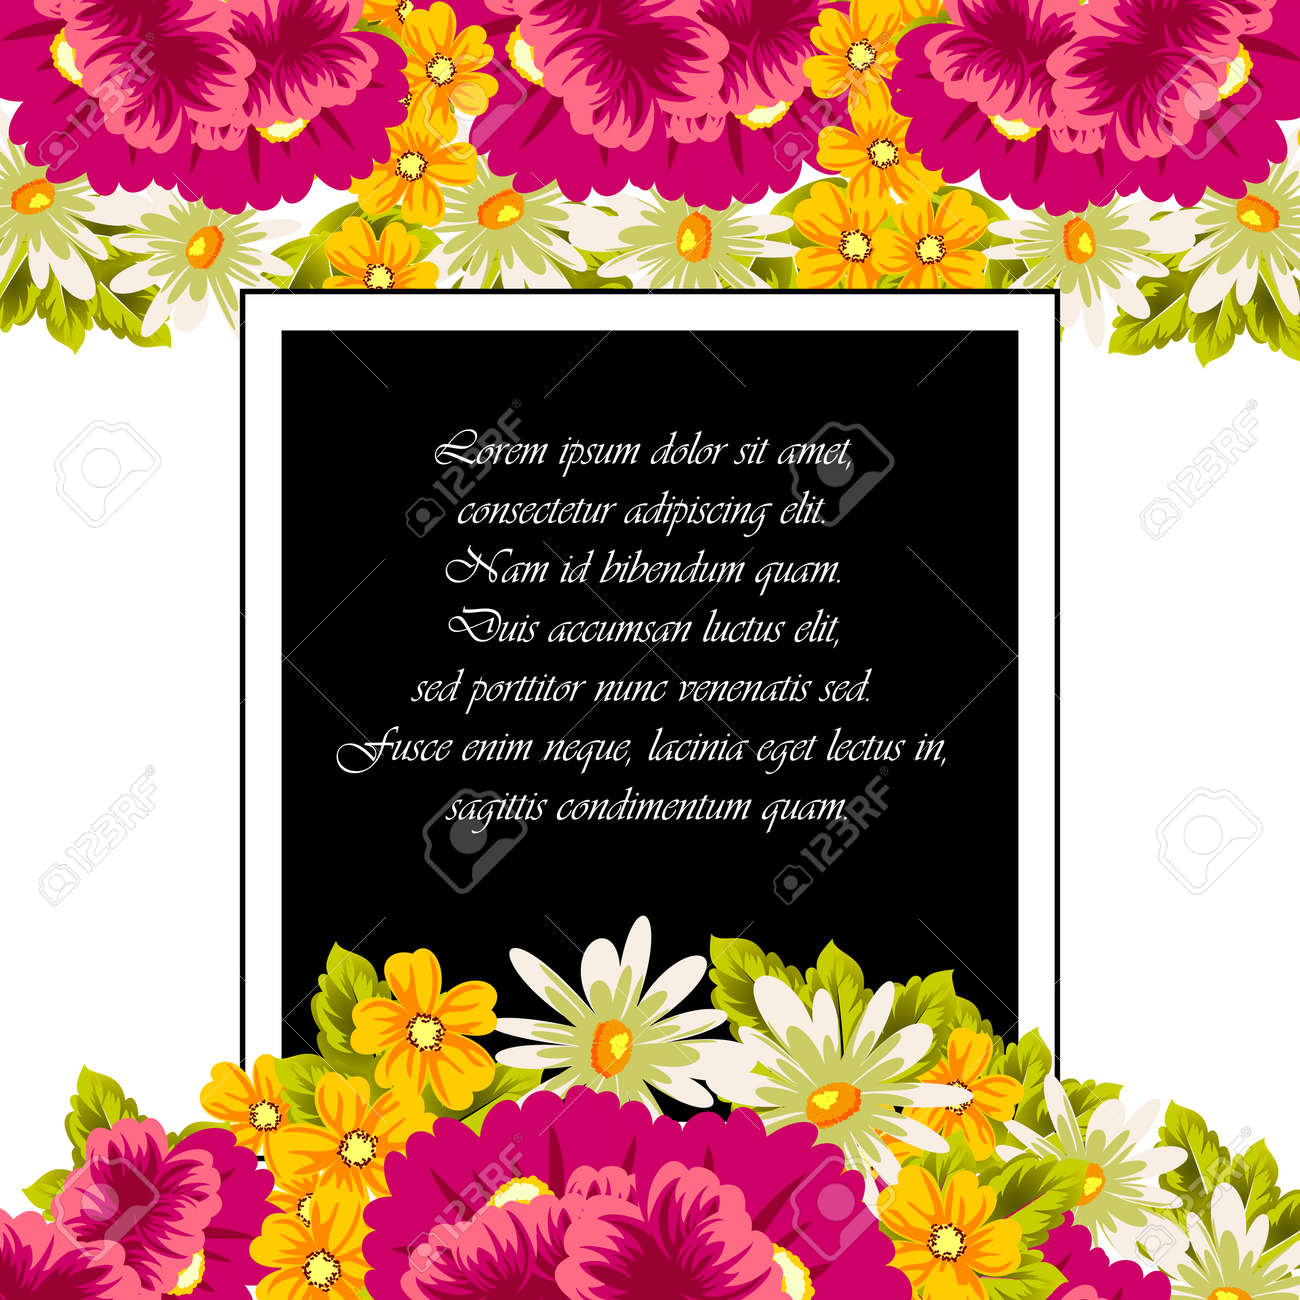 Frame of flowers for card designs greeting cards birthday frame of flowers for card designs greeting cards birthday invitations valentines day filmwisefo